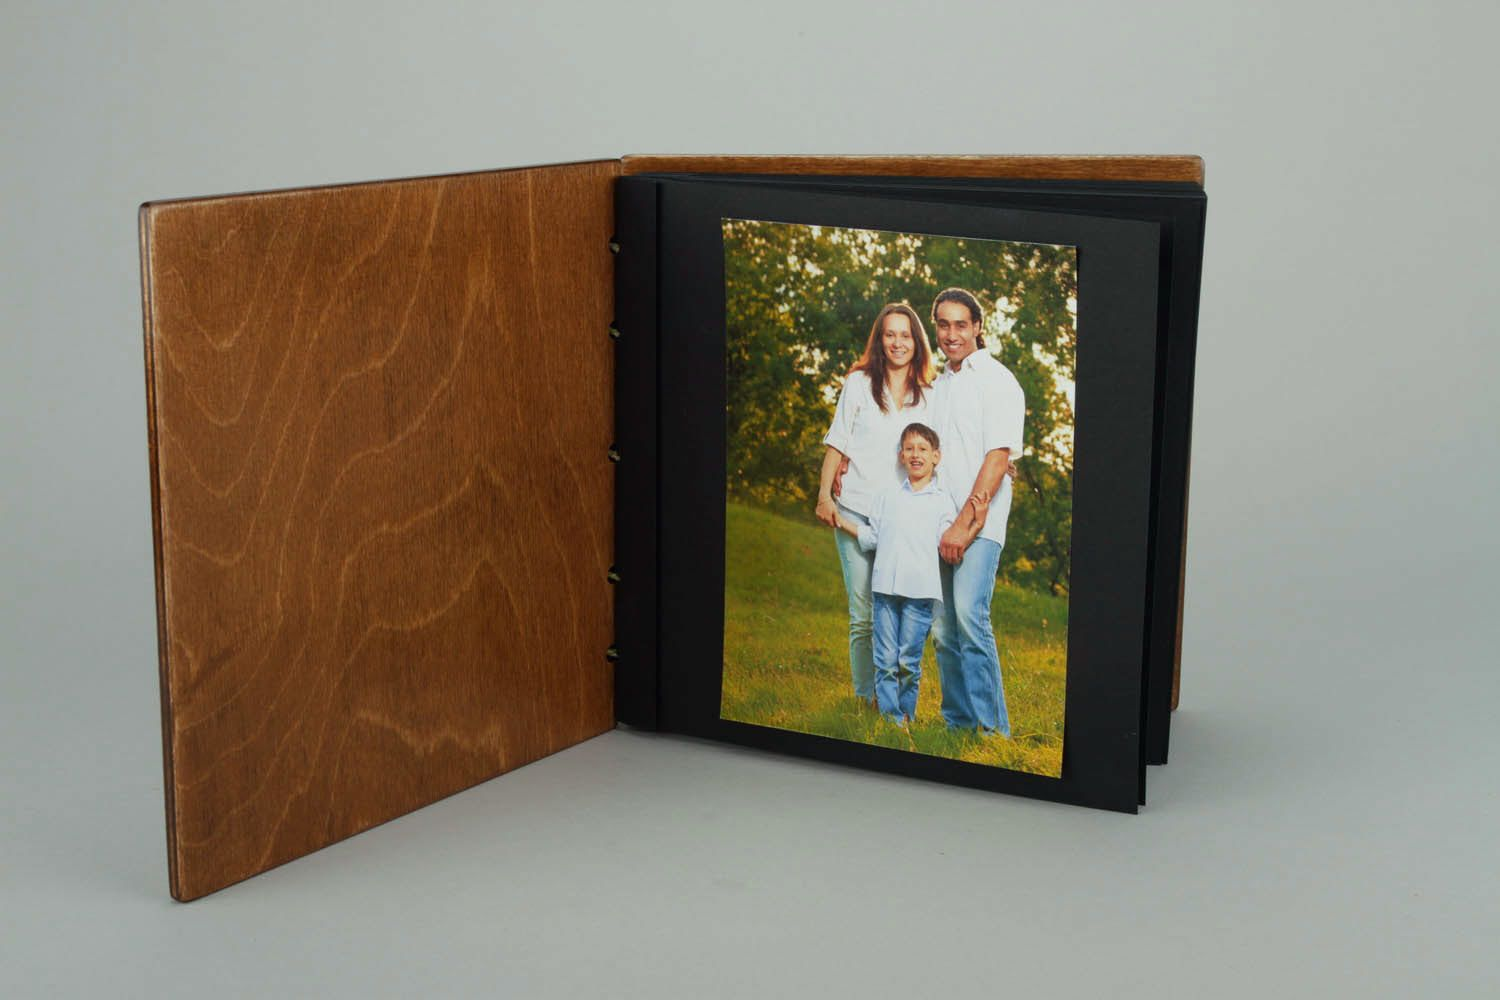 Photo album made of wood and leather - MADEheart.com